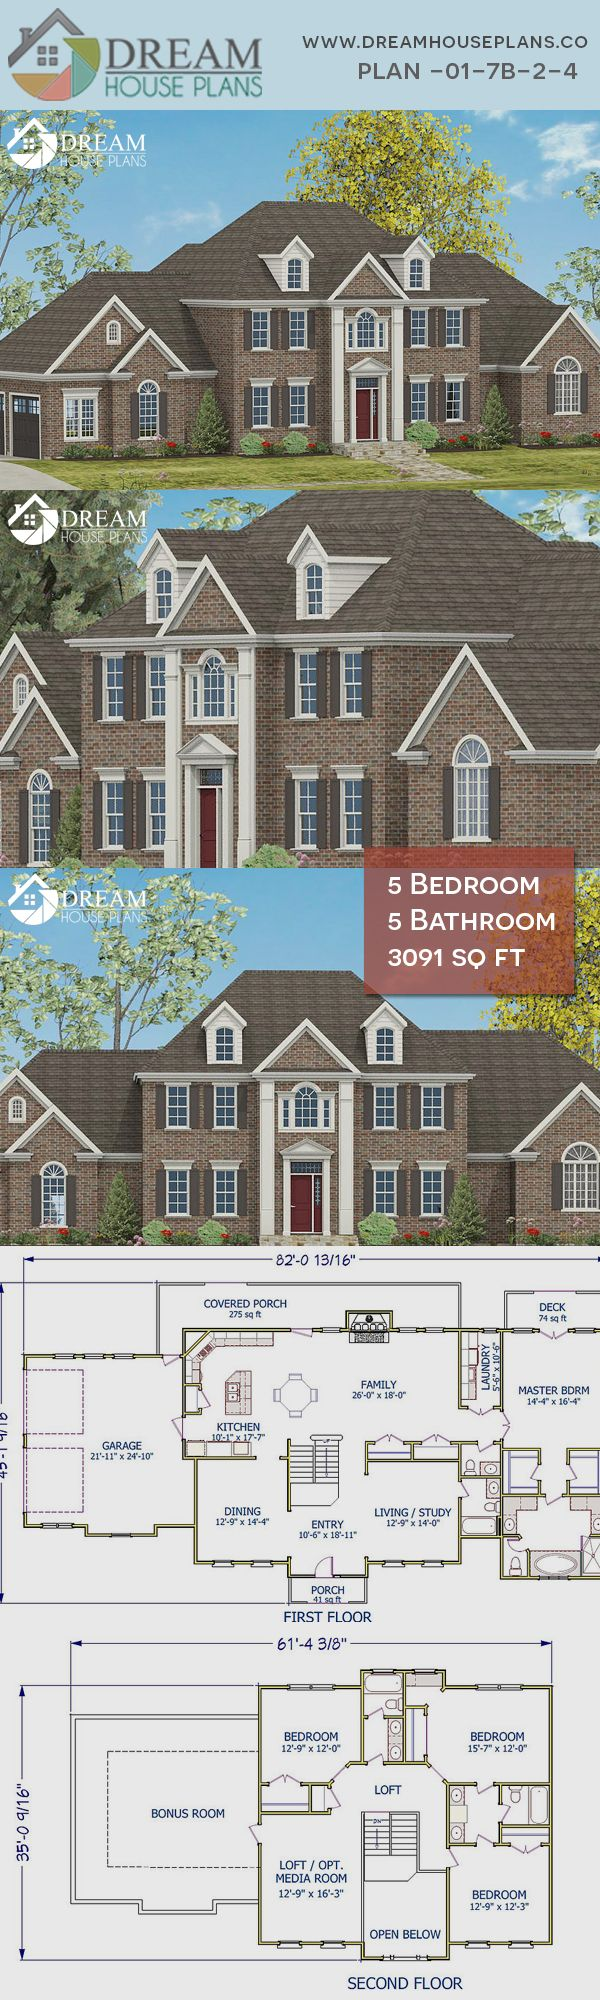 Dream House Plans Best Southern Living Family 20 Bedroom, 20 Sq ...